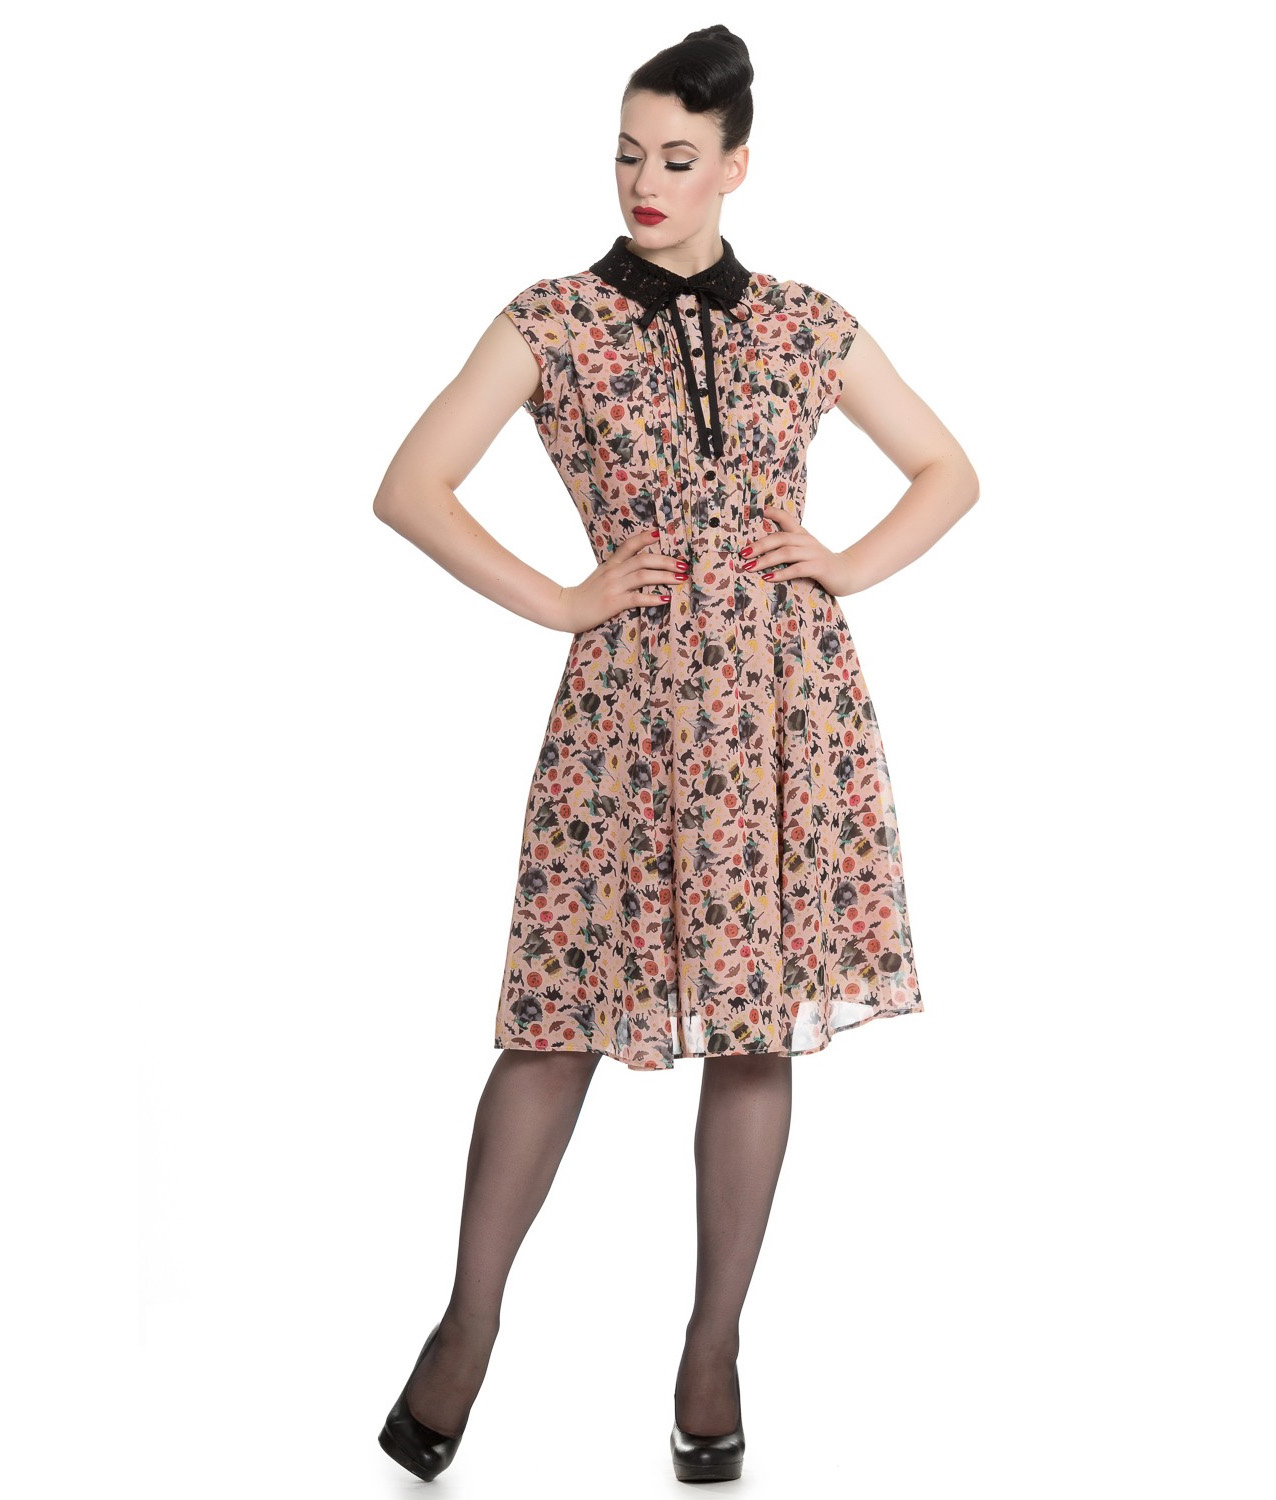 Hell-Bunny-Gothic-40s-50s-Beige-Dress-ZELDA-Witchy-Halloween-All-Sizes thumbnail 15